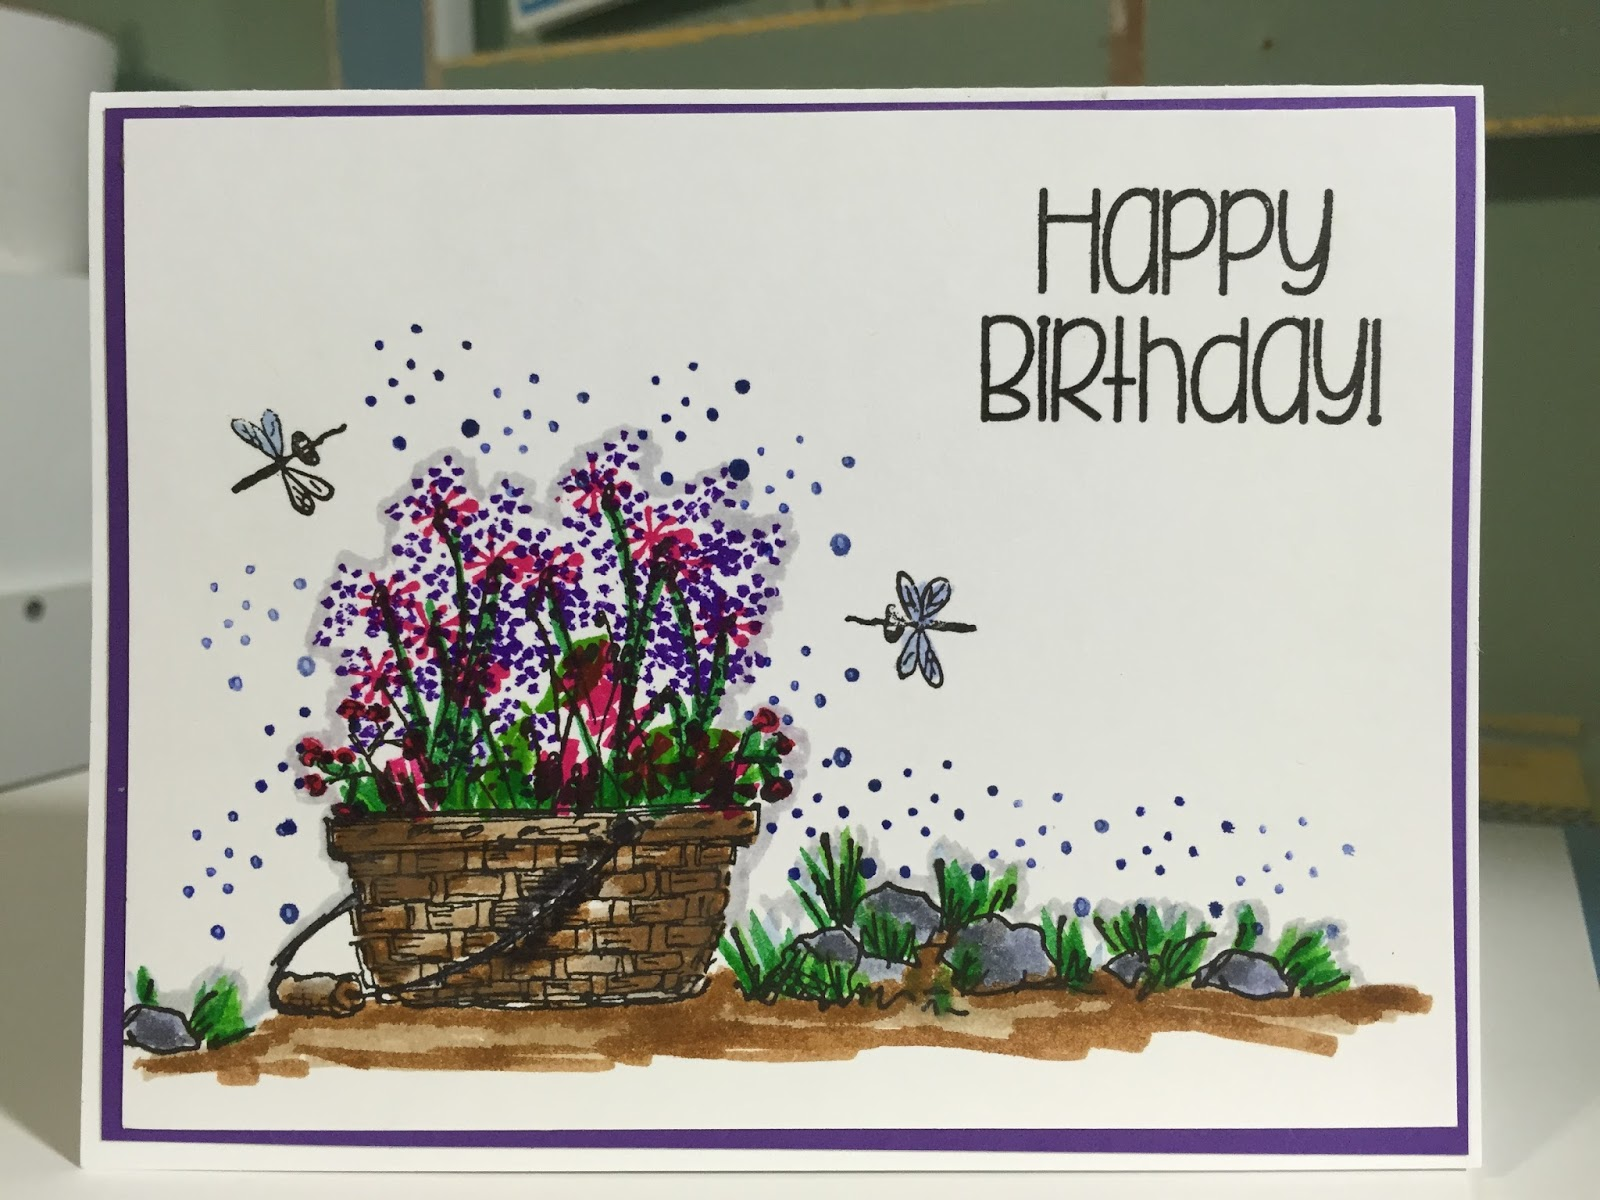 Just Stopping By To Say Happy Birthday: Scrapbooking And Cardmaking 101: Happy Birthday With